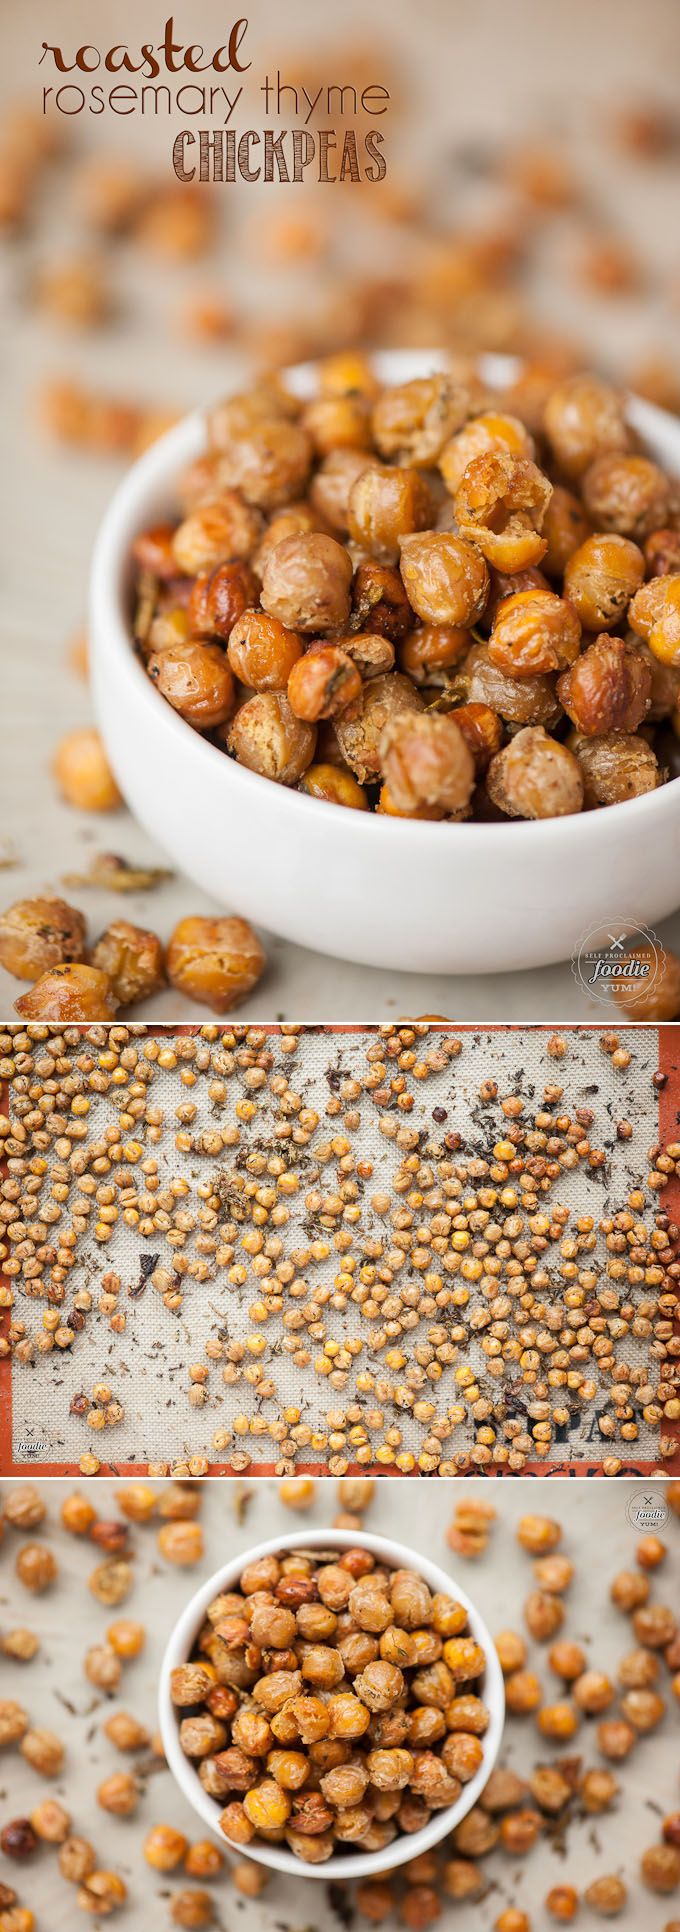 If you are looking for a tasty snack packed full of nutritional benefits, you cannot beat these delicious and high in fiber Roasted Rosemary Thyme Chickpeas.